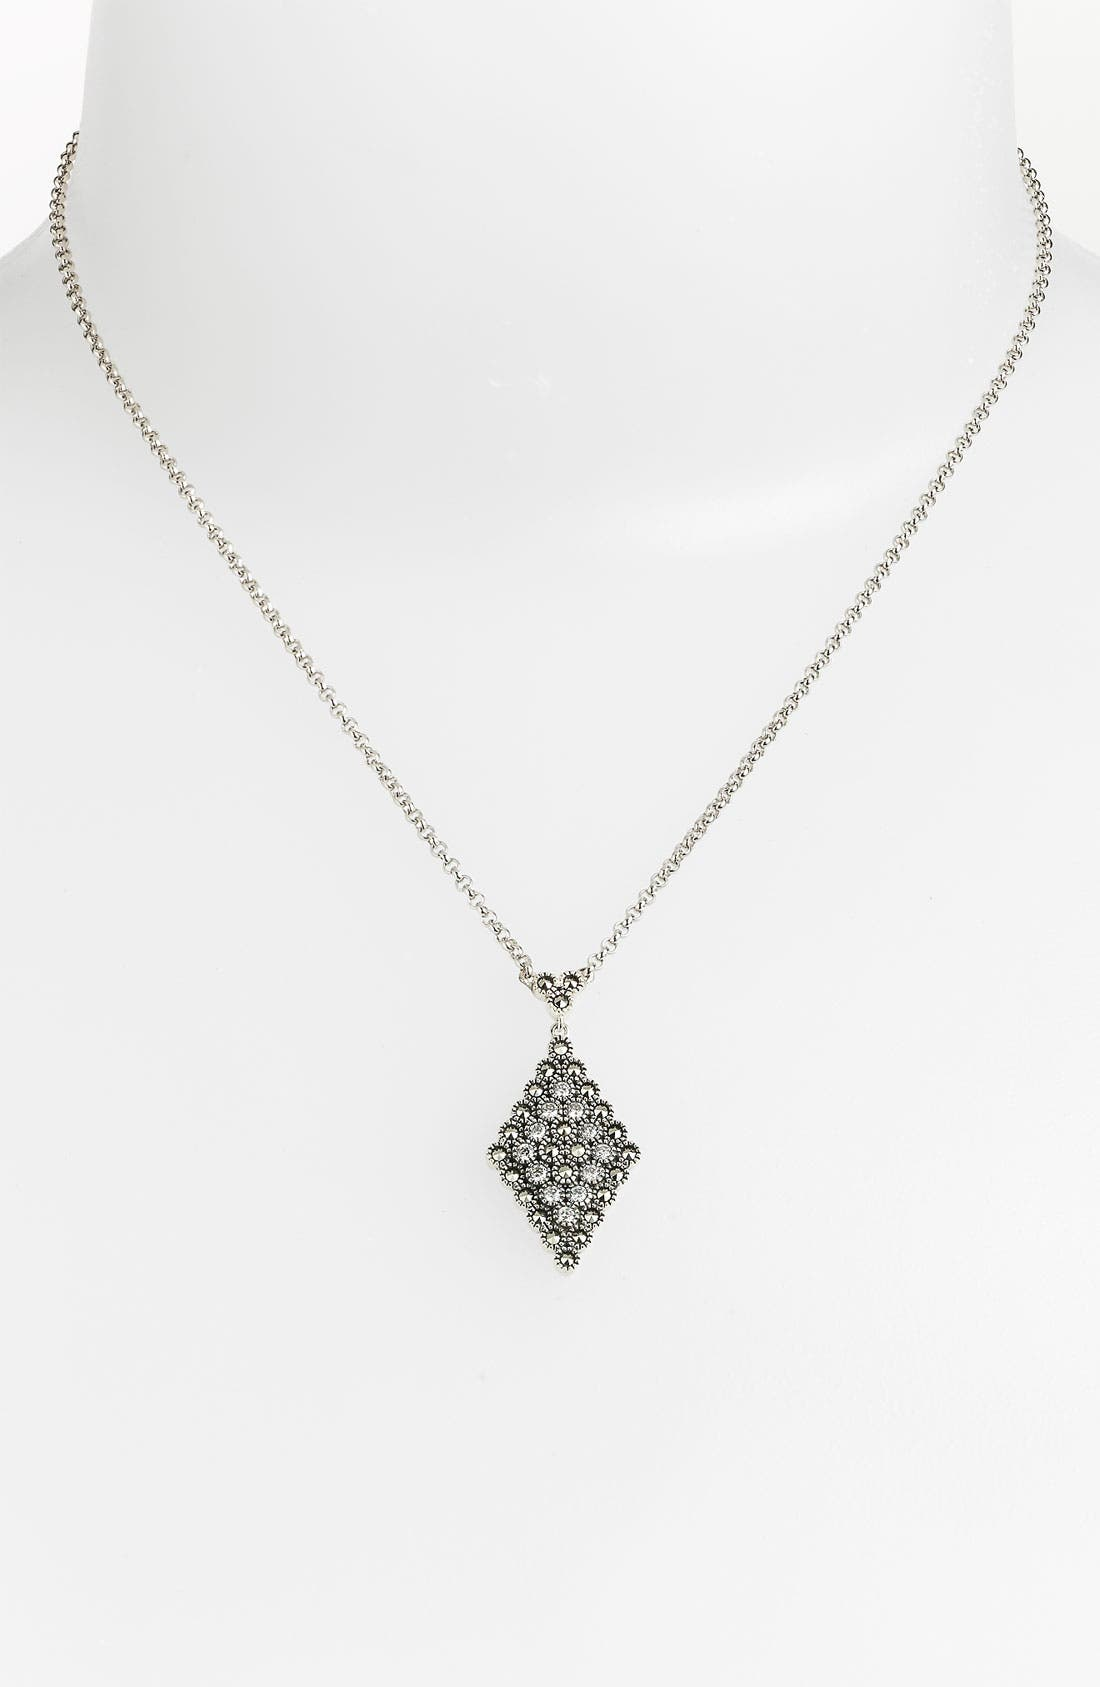 Main Image - Judith Jack 'Starlight' Pendant Necklace